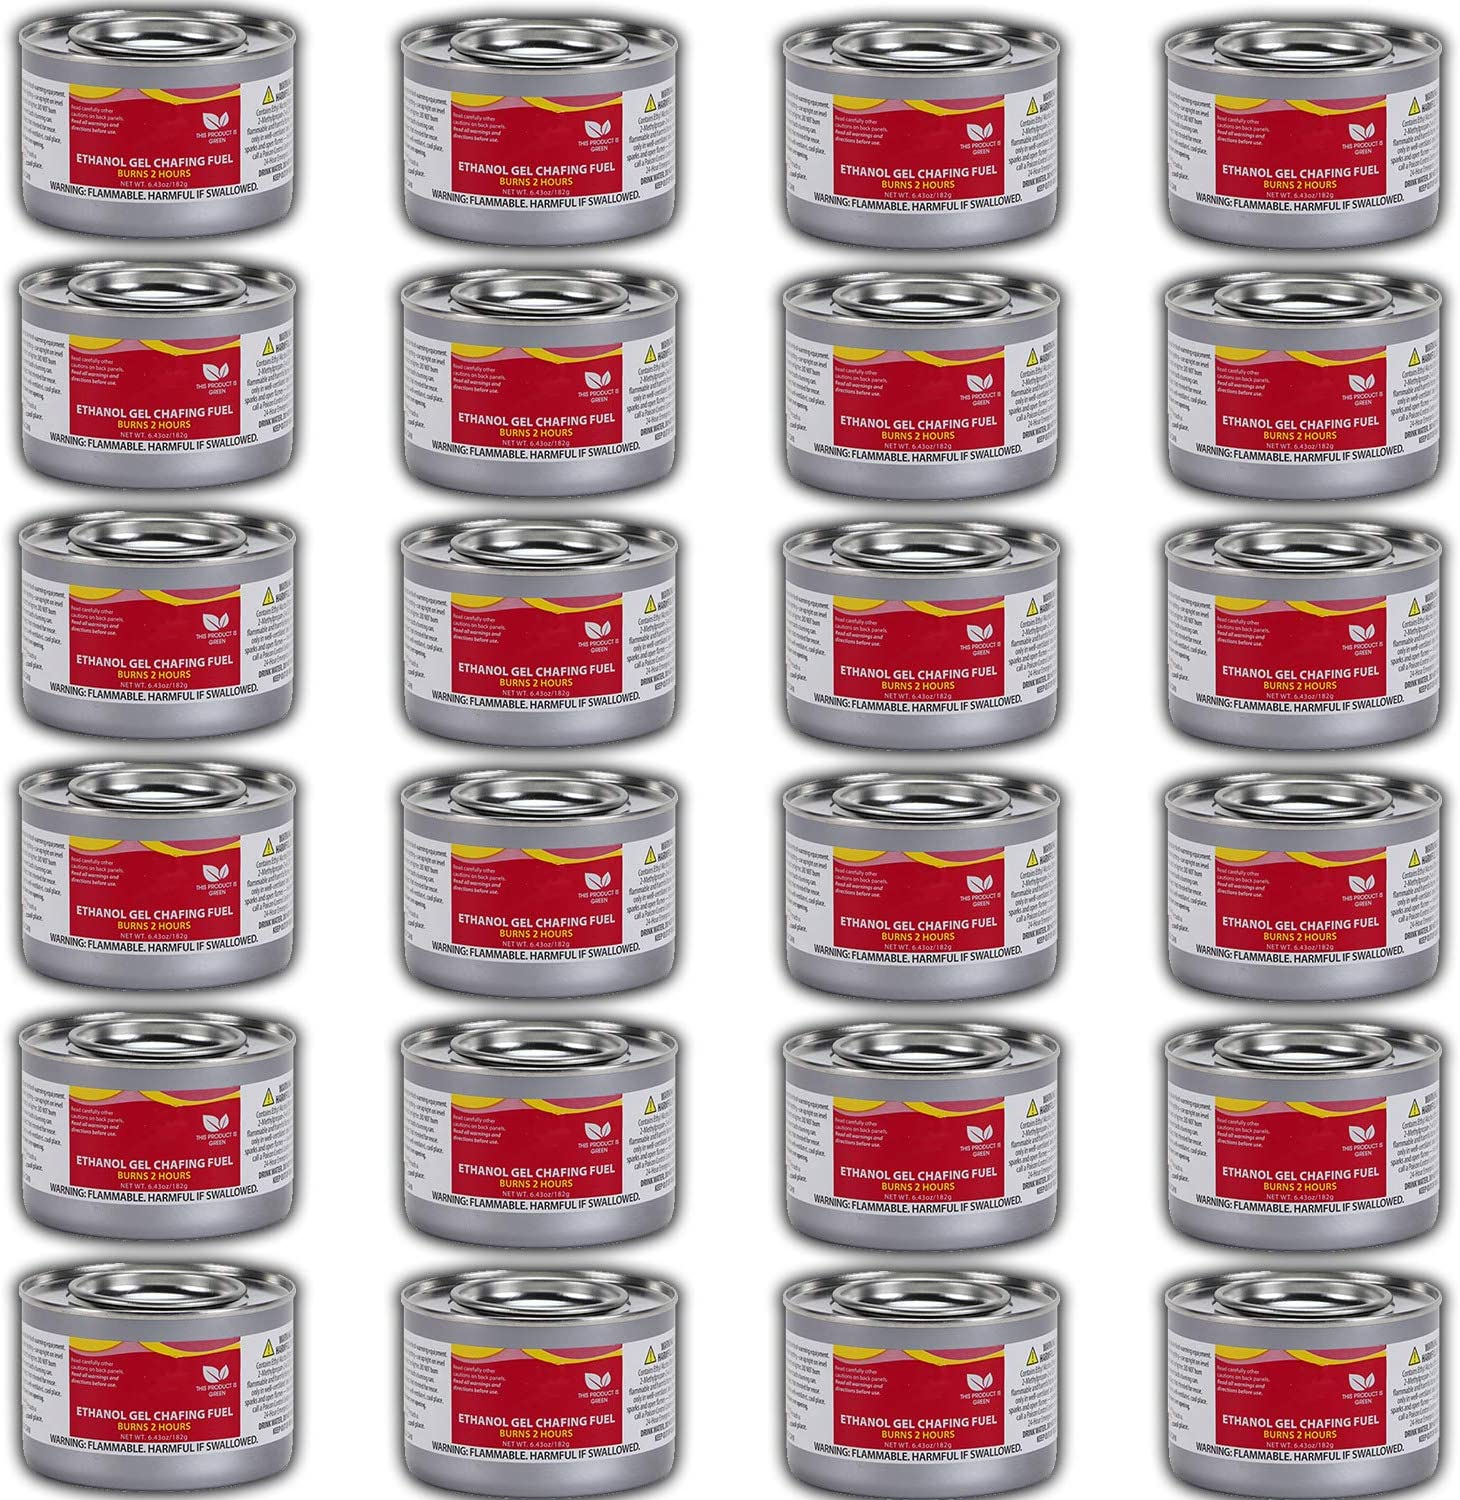 Chafing Dish Fuel Cans – Includes 24 Ethanol Gel Chafing Fuels, Burns for 2.5 Hours (6.43 OZ) for your Cooking, Food Warming, Buffet and Parties.